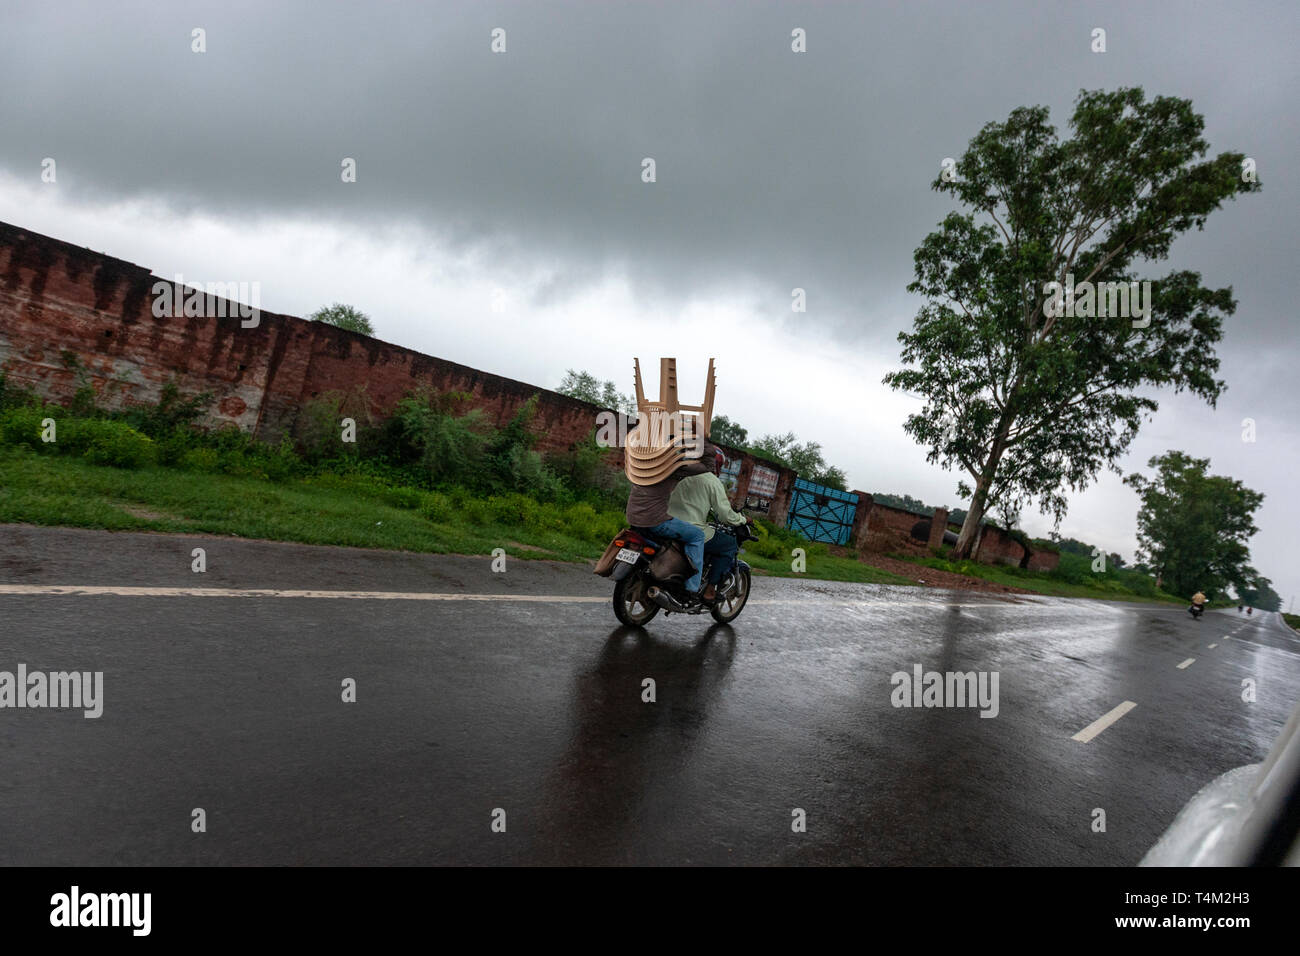 Motorbike with a passanger carrying plastic chairs under a heavy rain, Uttar Pradesh, India - Stock Image